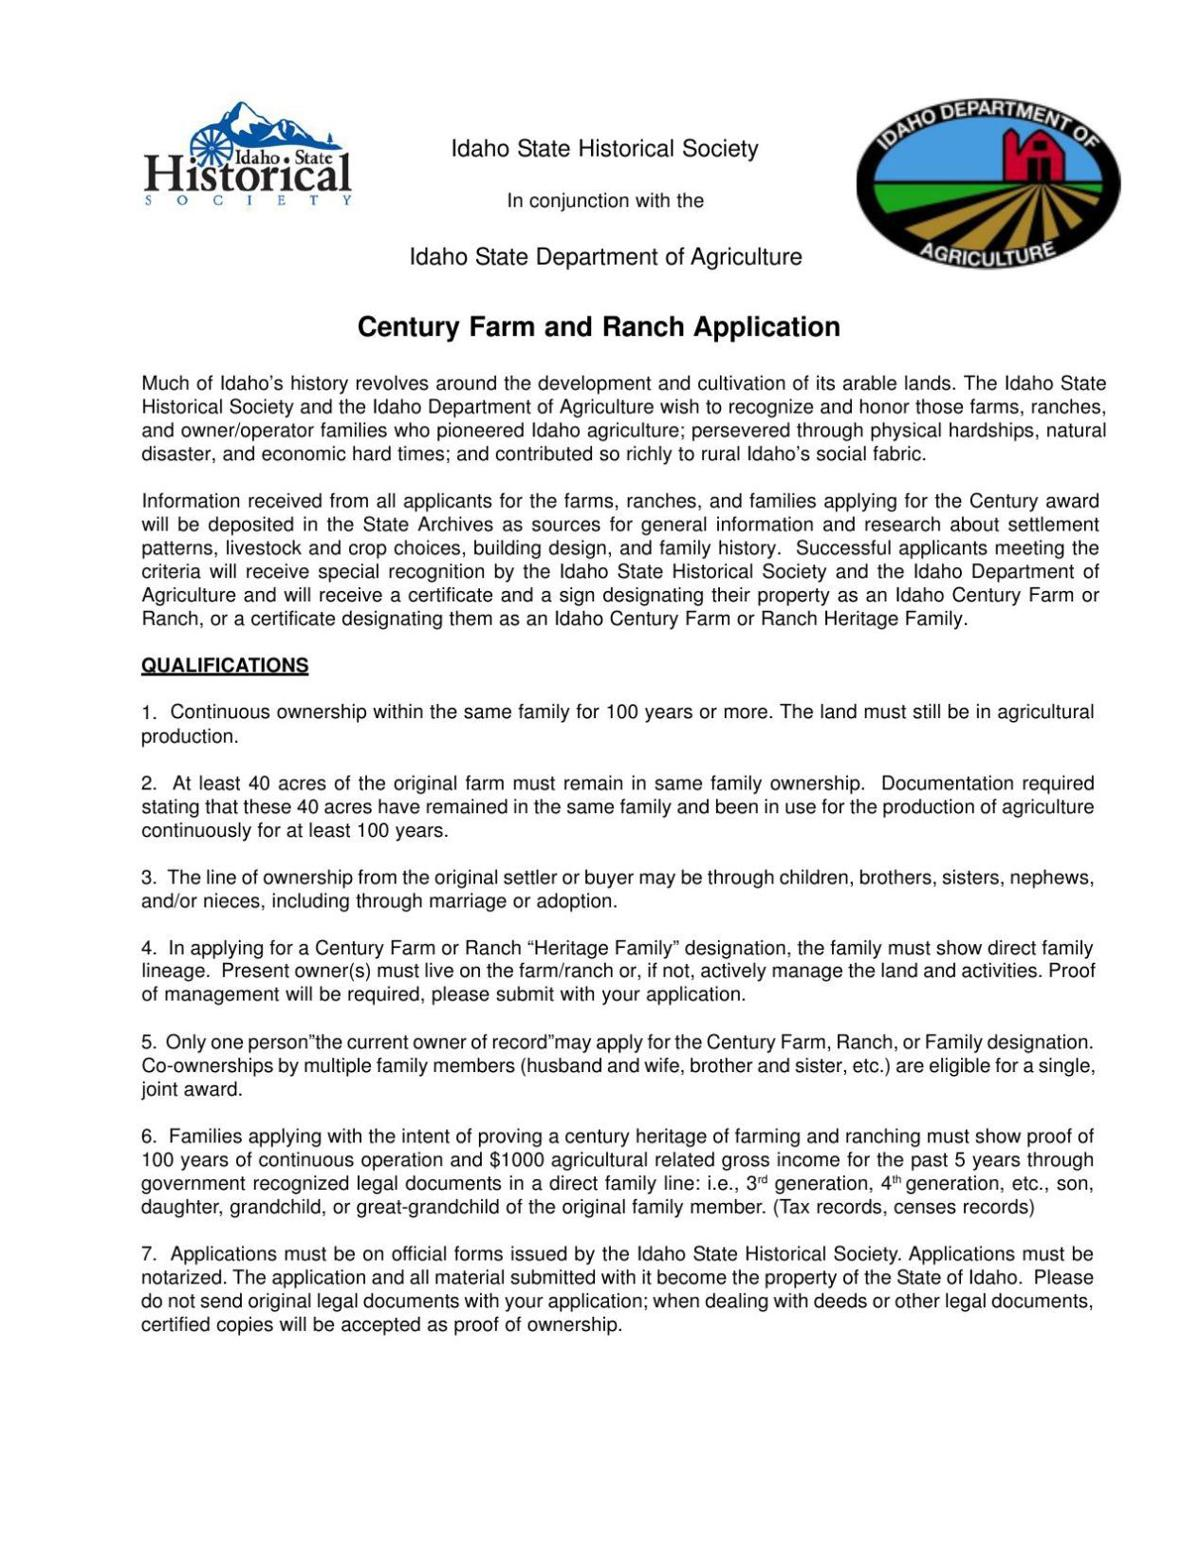 Century Farm and Ranch application